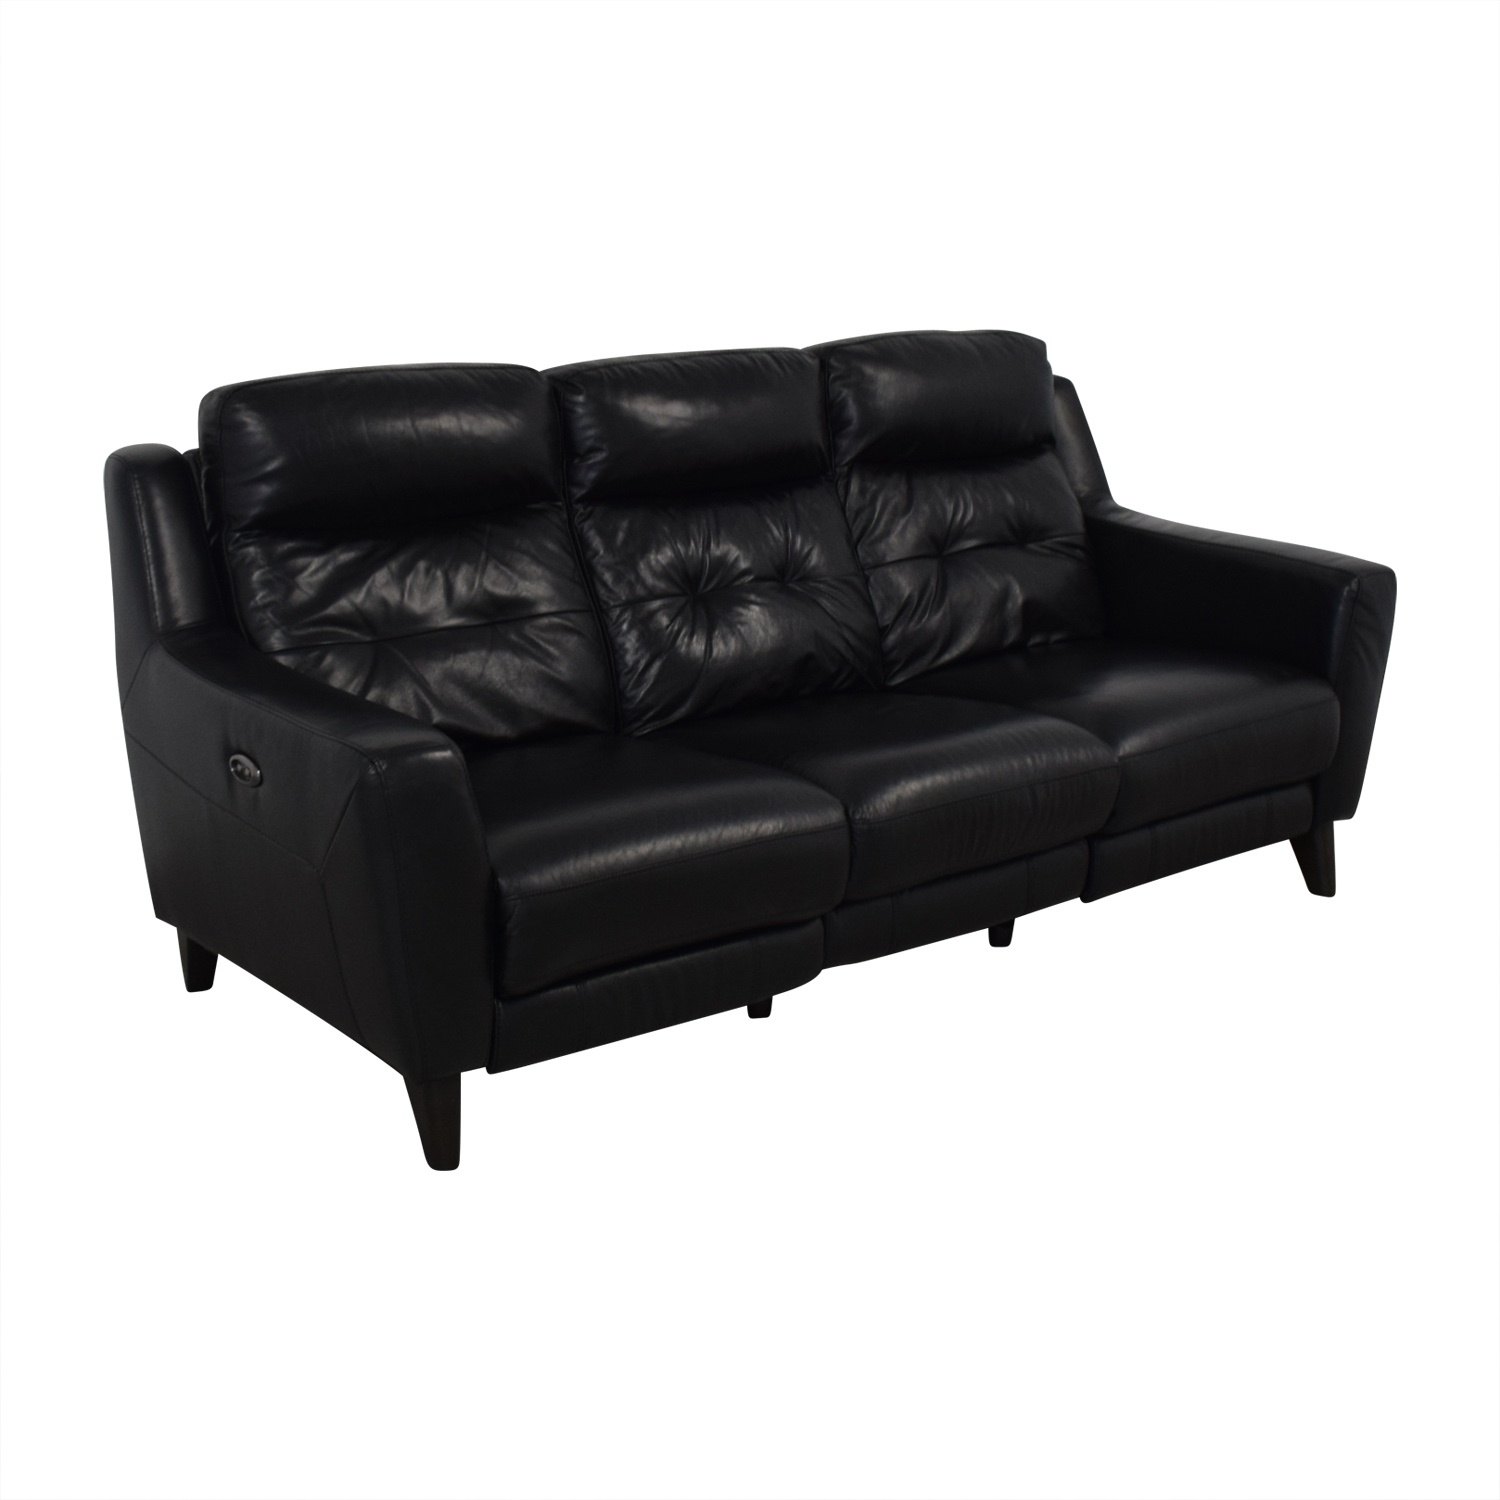 Bob's Discount Furniture Bob's Discount Furniture Black Reclining Sofa for sale